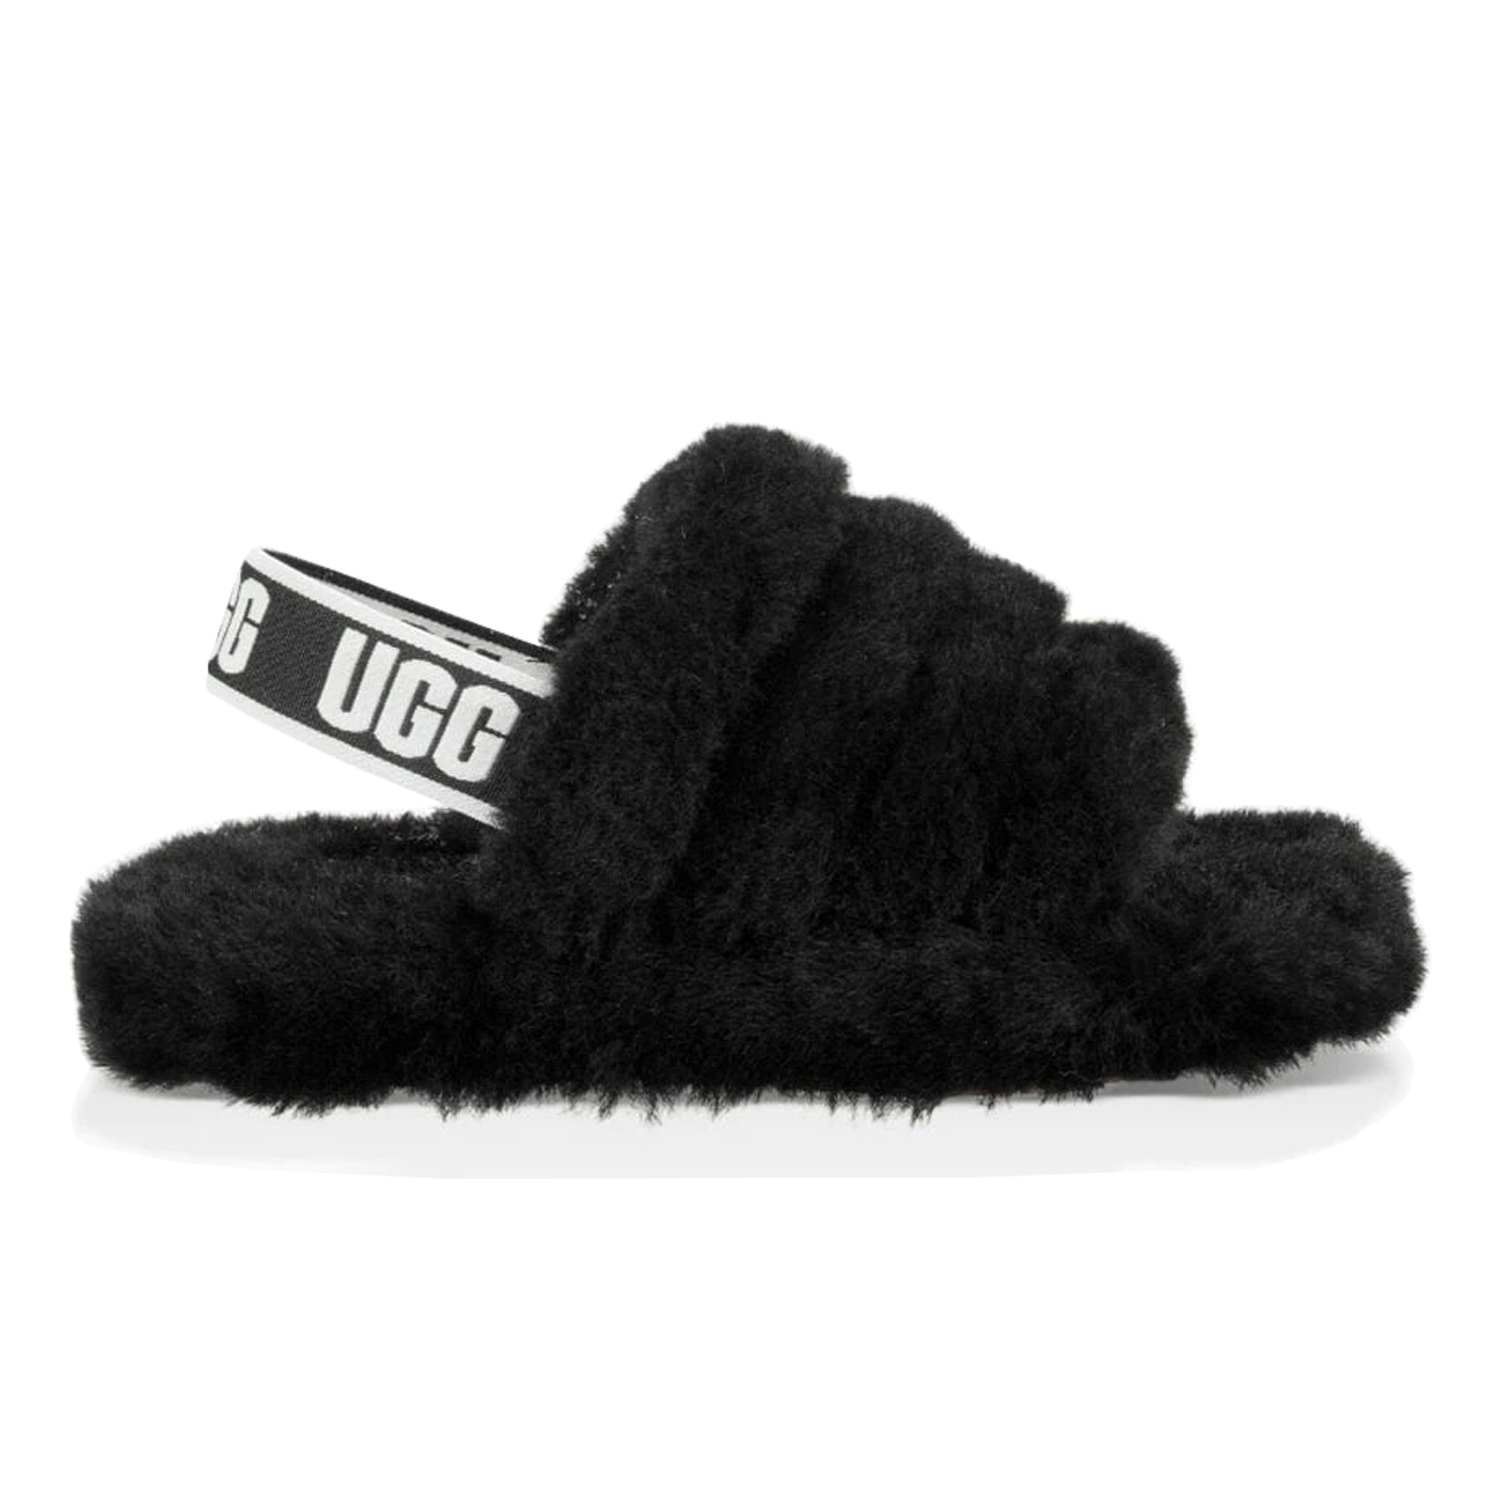 Buy Womens UGG Slides in Black Color